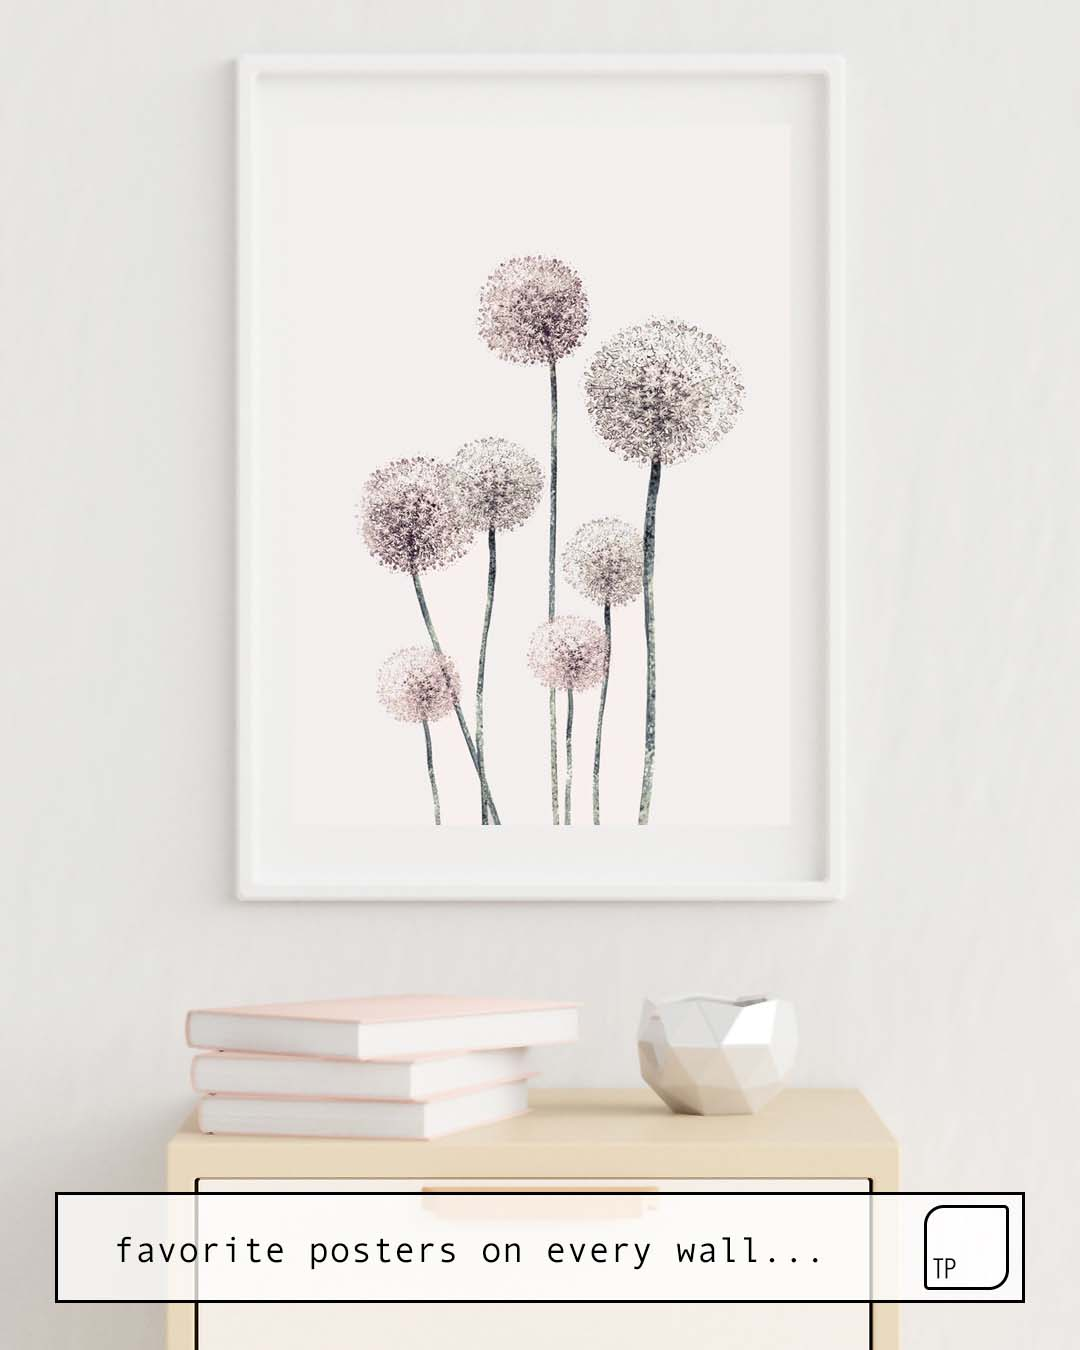 The photo shows an example of furnishing with the motif DANDELIONS by Andreas12 as mural